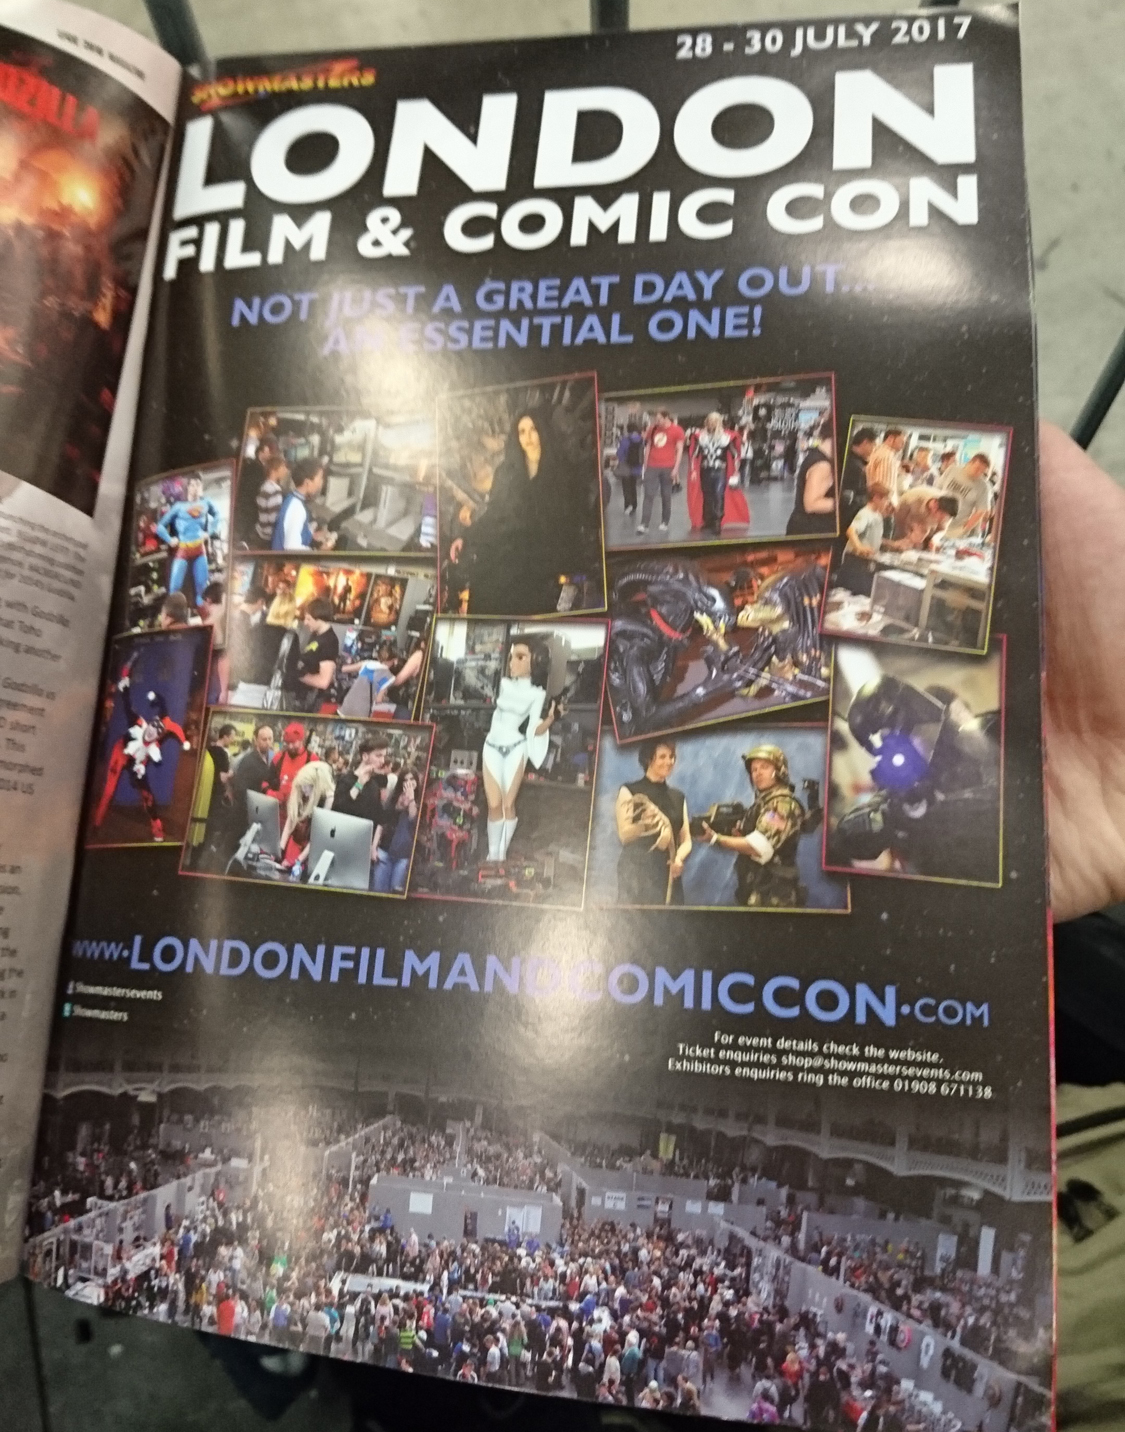 Termin für die London Film and Comic Con 2017 - LFCC 2017